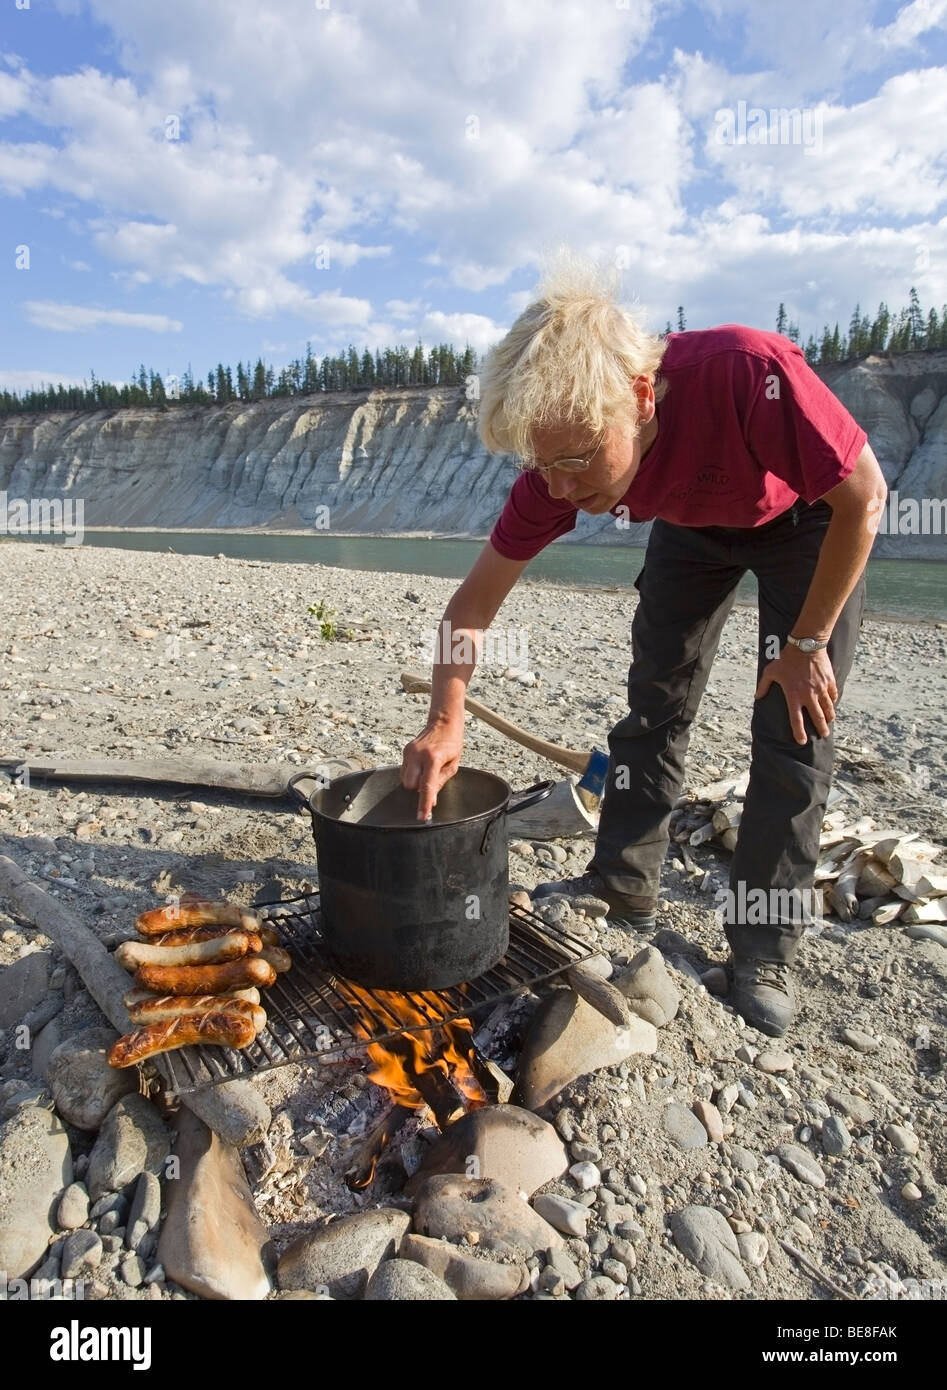 Woman cooking on a campfire, BBQ sausages, bratwurst, kettle, pot, grill, upper Liard River, Yukon Territory, Canada Stock Photo